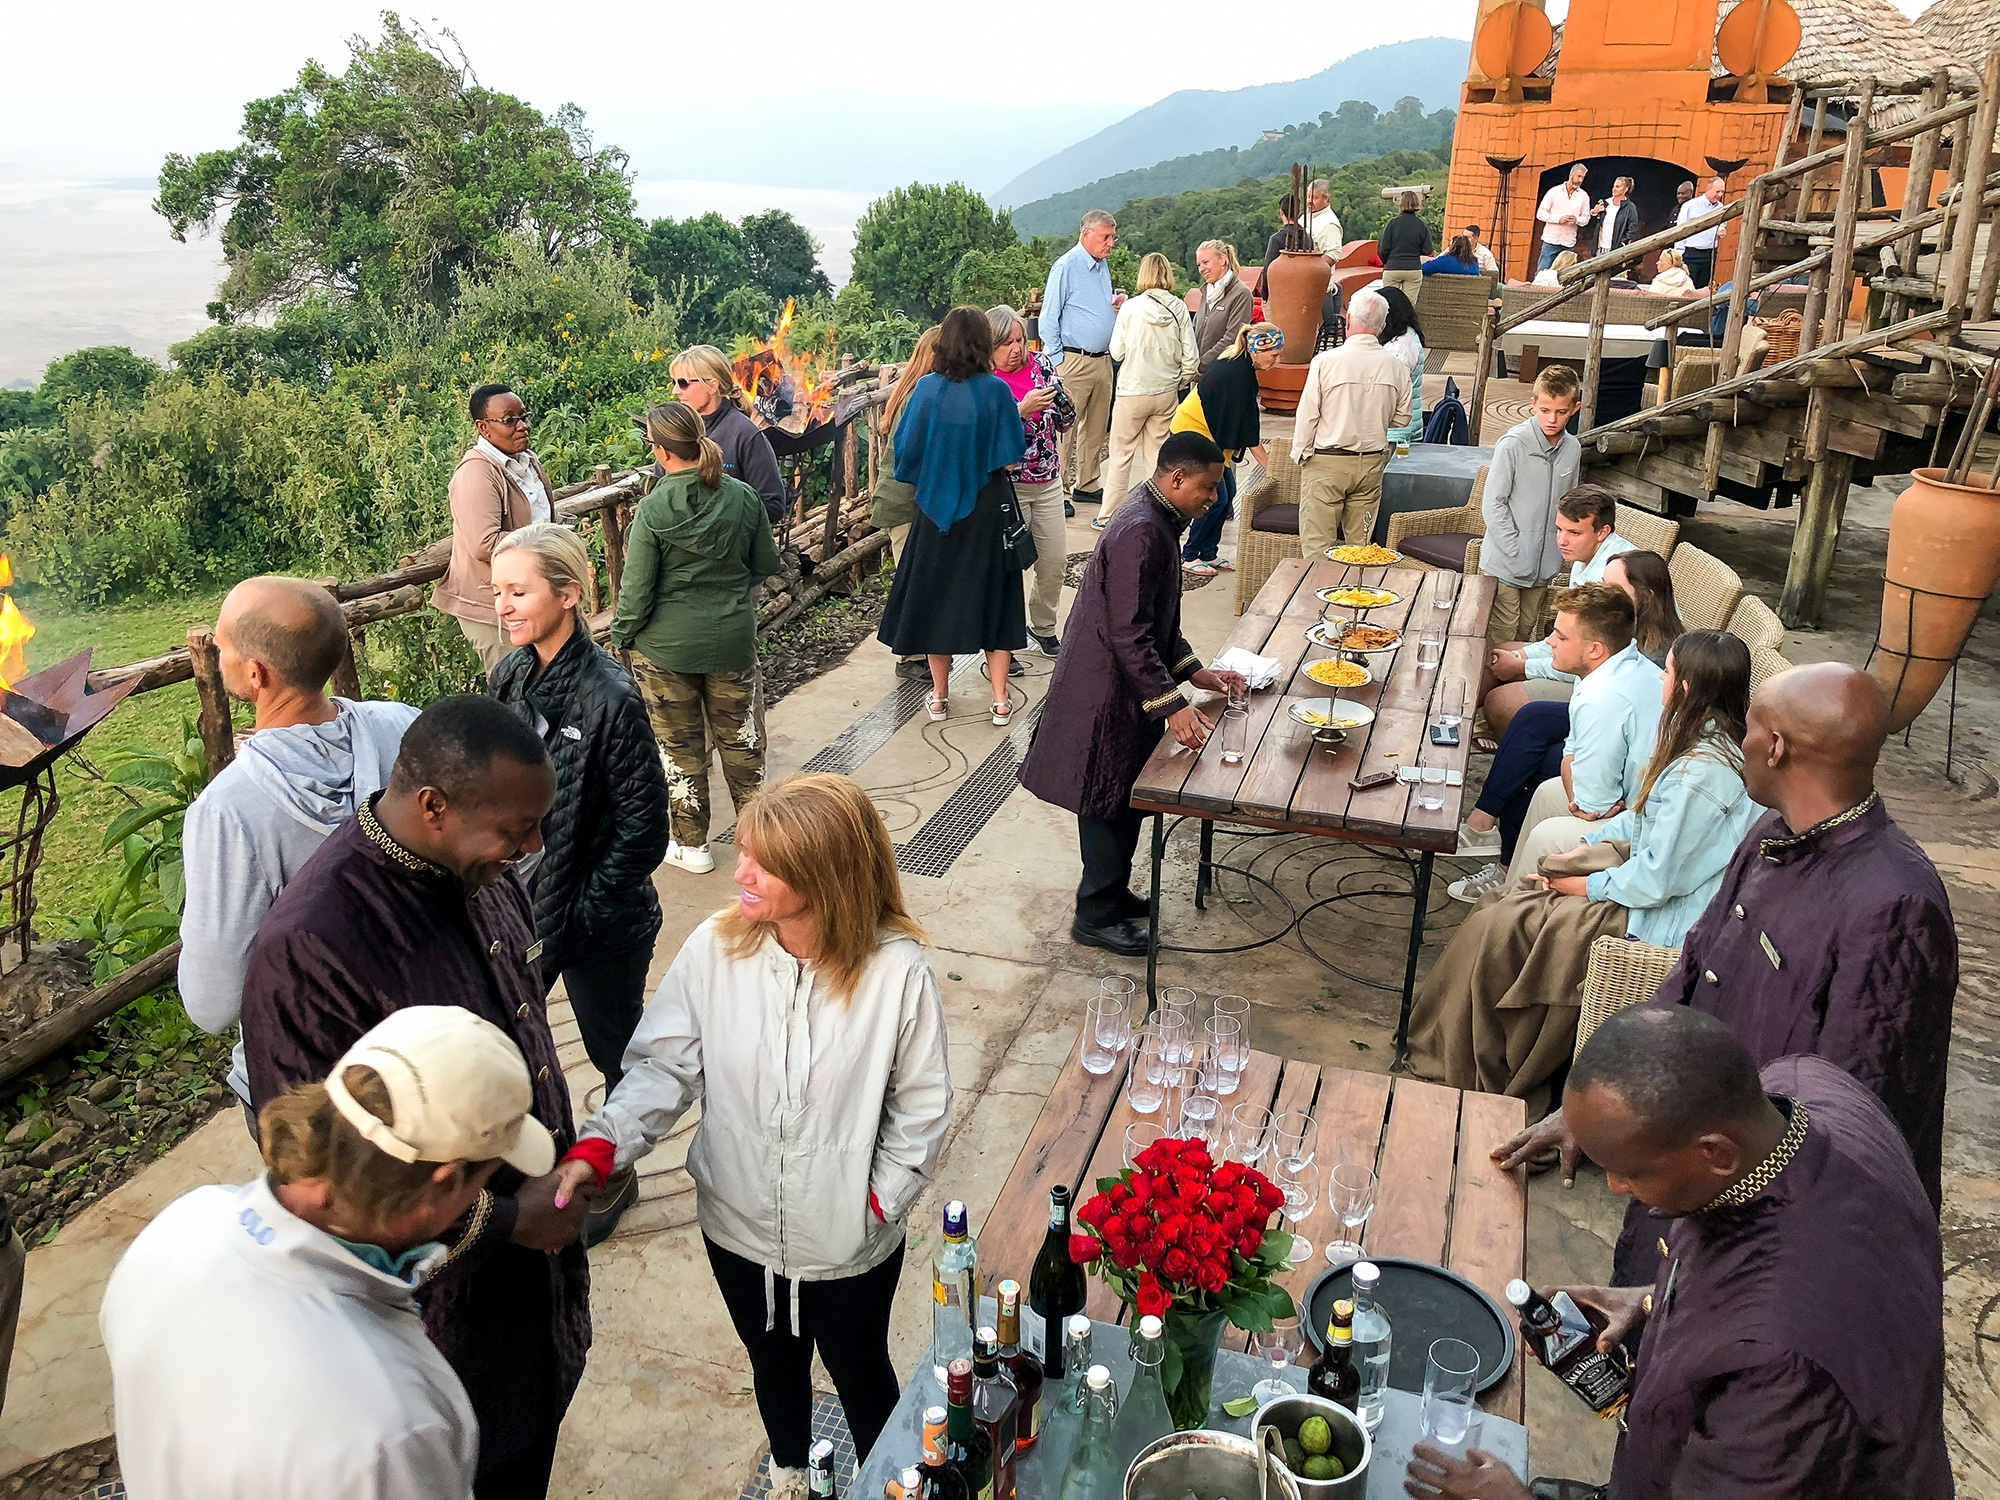 incentive travel of a group sundowner at Ngorongoro crater lodge